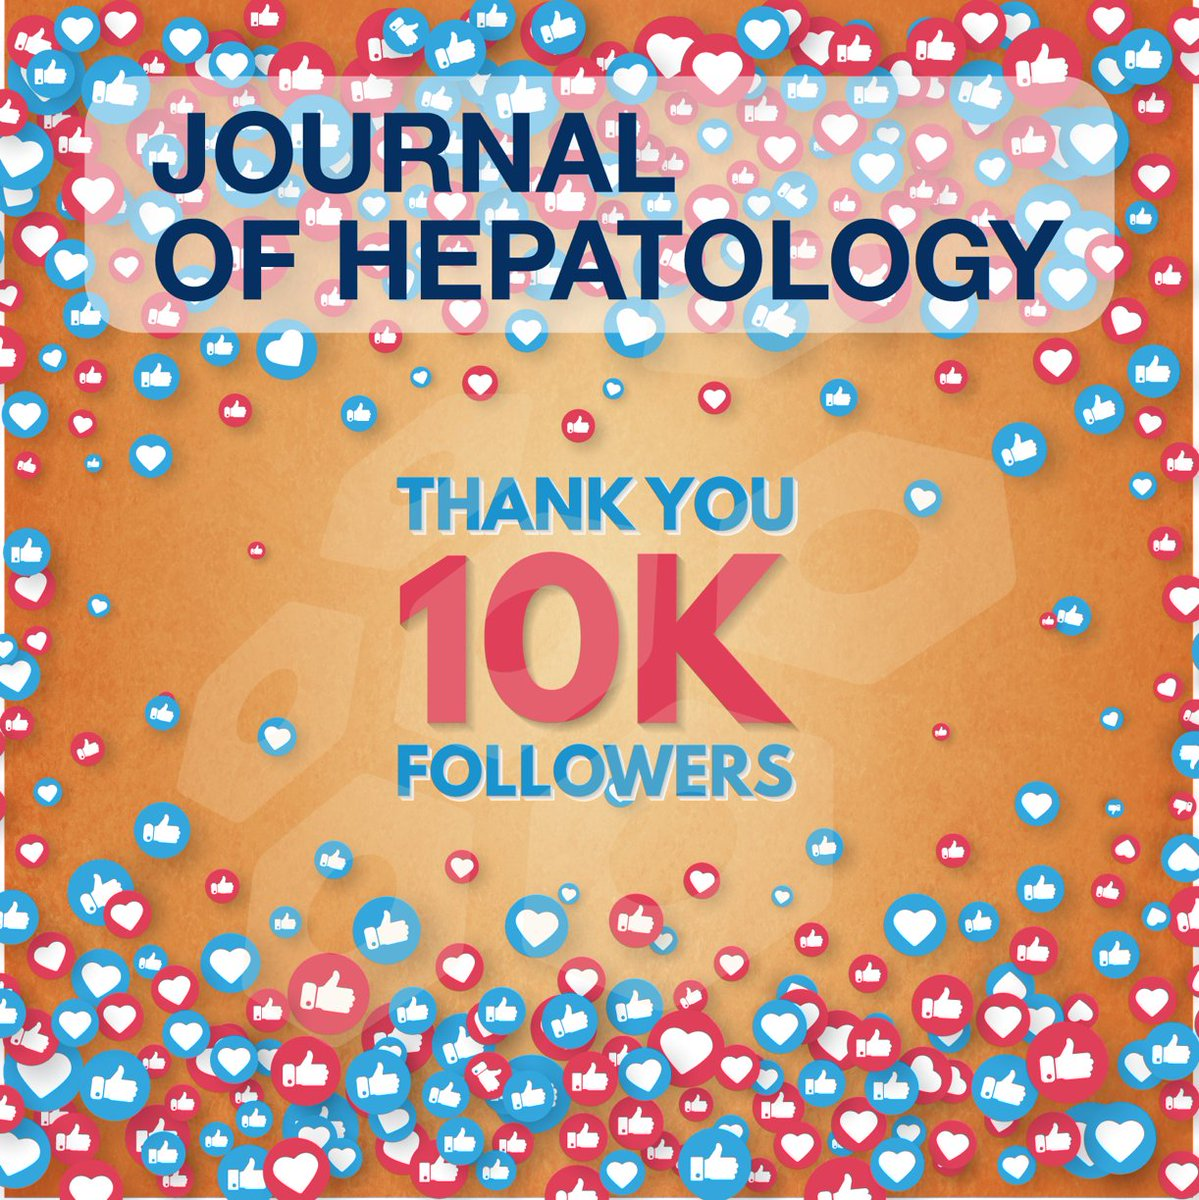 The Journal of Hepatology reached 10,000 followers on twitter. 🙌 A big thanks to all our followers! Stay tuned, you will continue to find the latest developments and news in #hepatology right here. #livertwitter #liverdisease https://t.co/qTIKkmq3jE